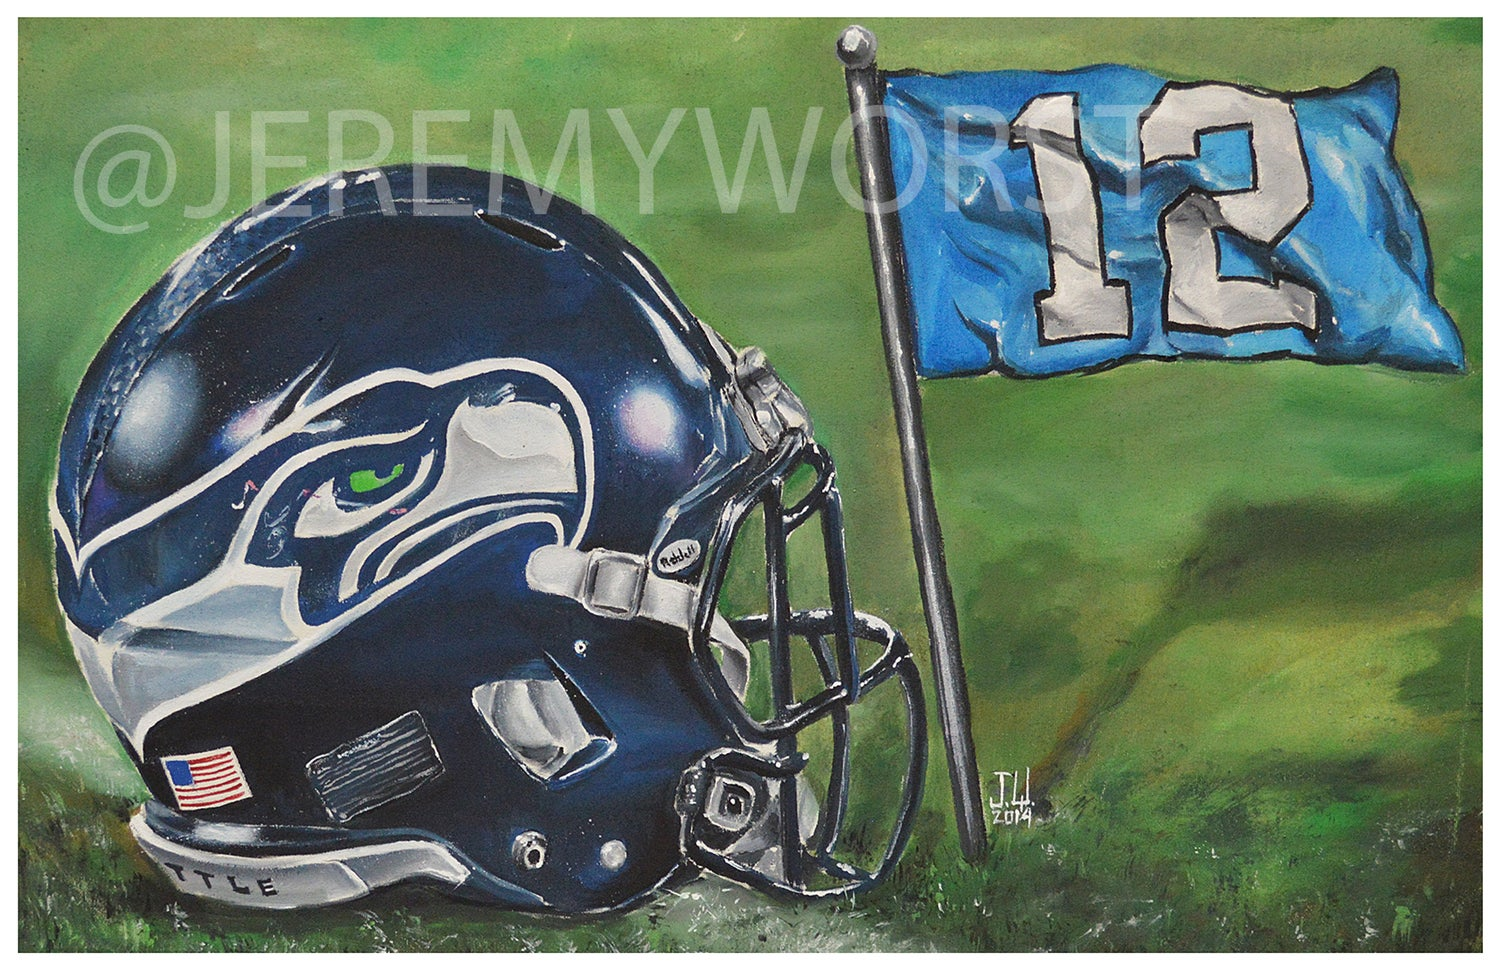 Image of JEREMY WORST Seattle Seahawks Painting Print Artwork helmet nfl football helmet player sports